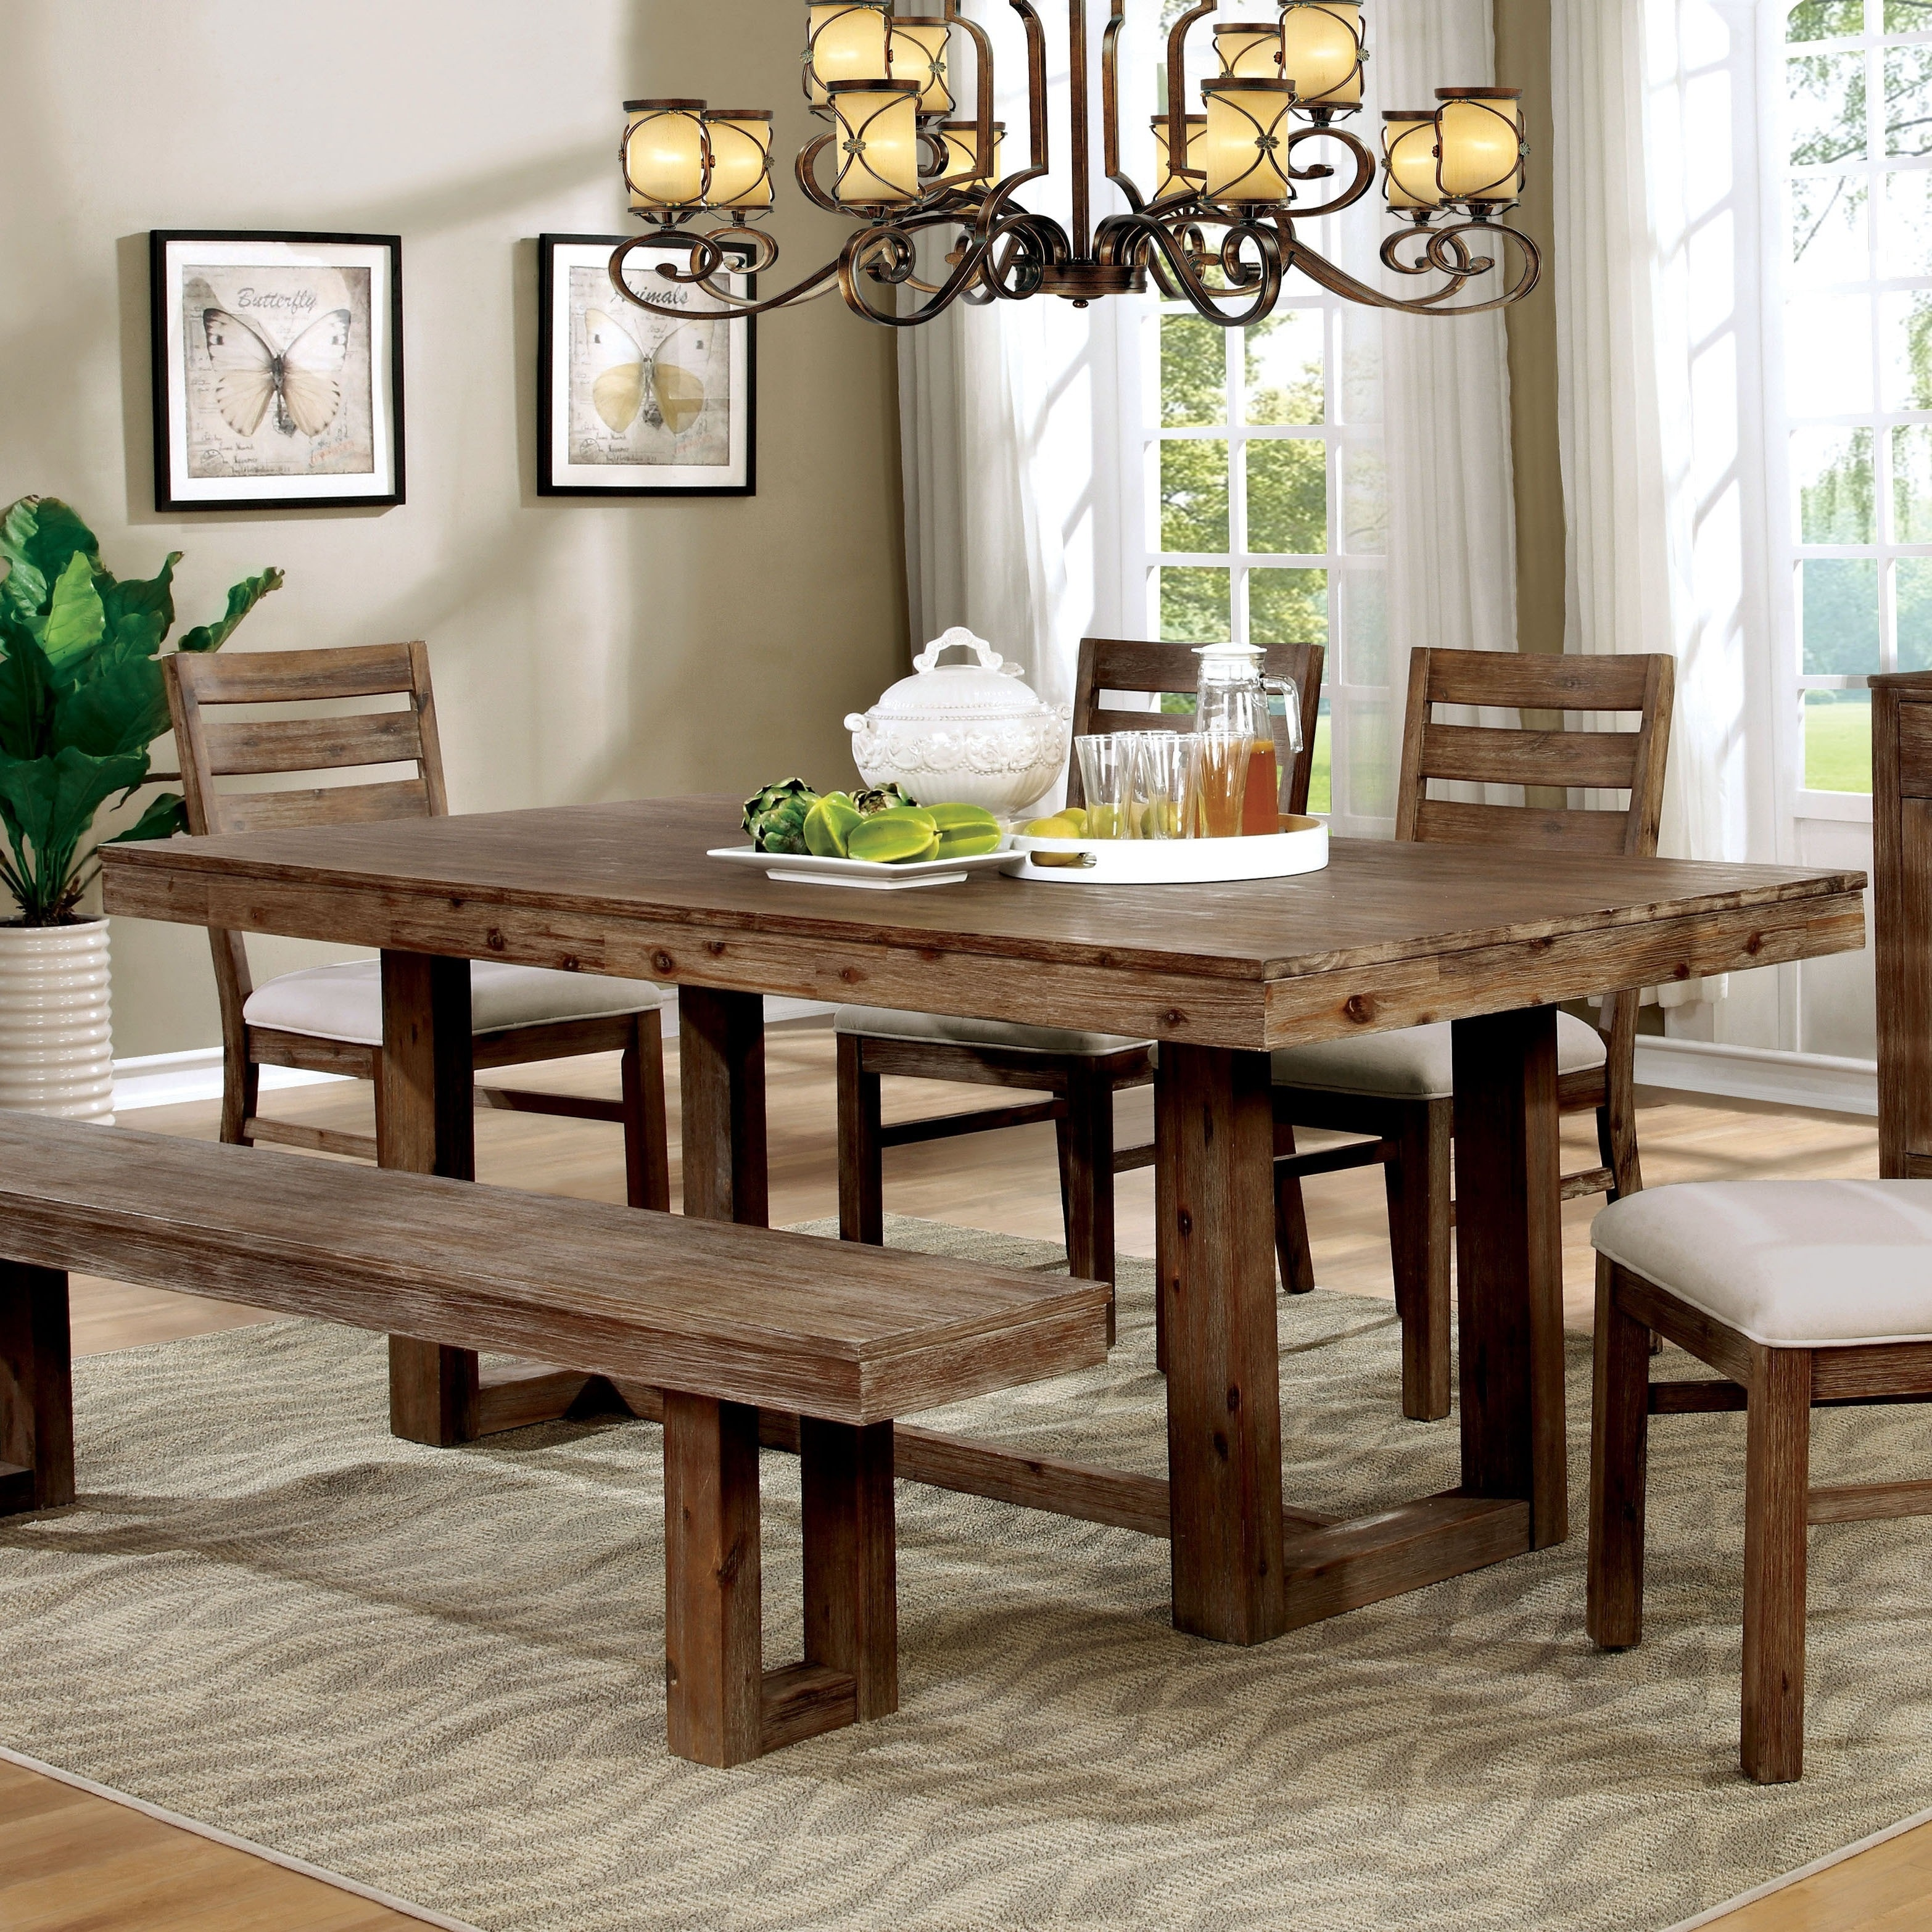 Shop Furniture Of America Treville Rustic Plank Style Dining Table On Sale Overstock 20470312 Oak